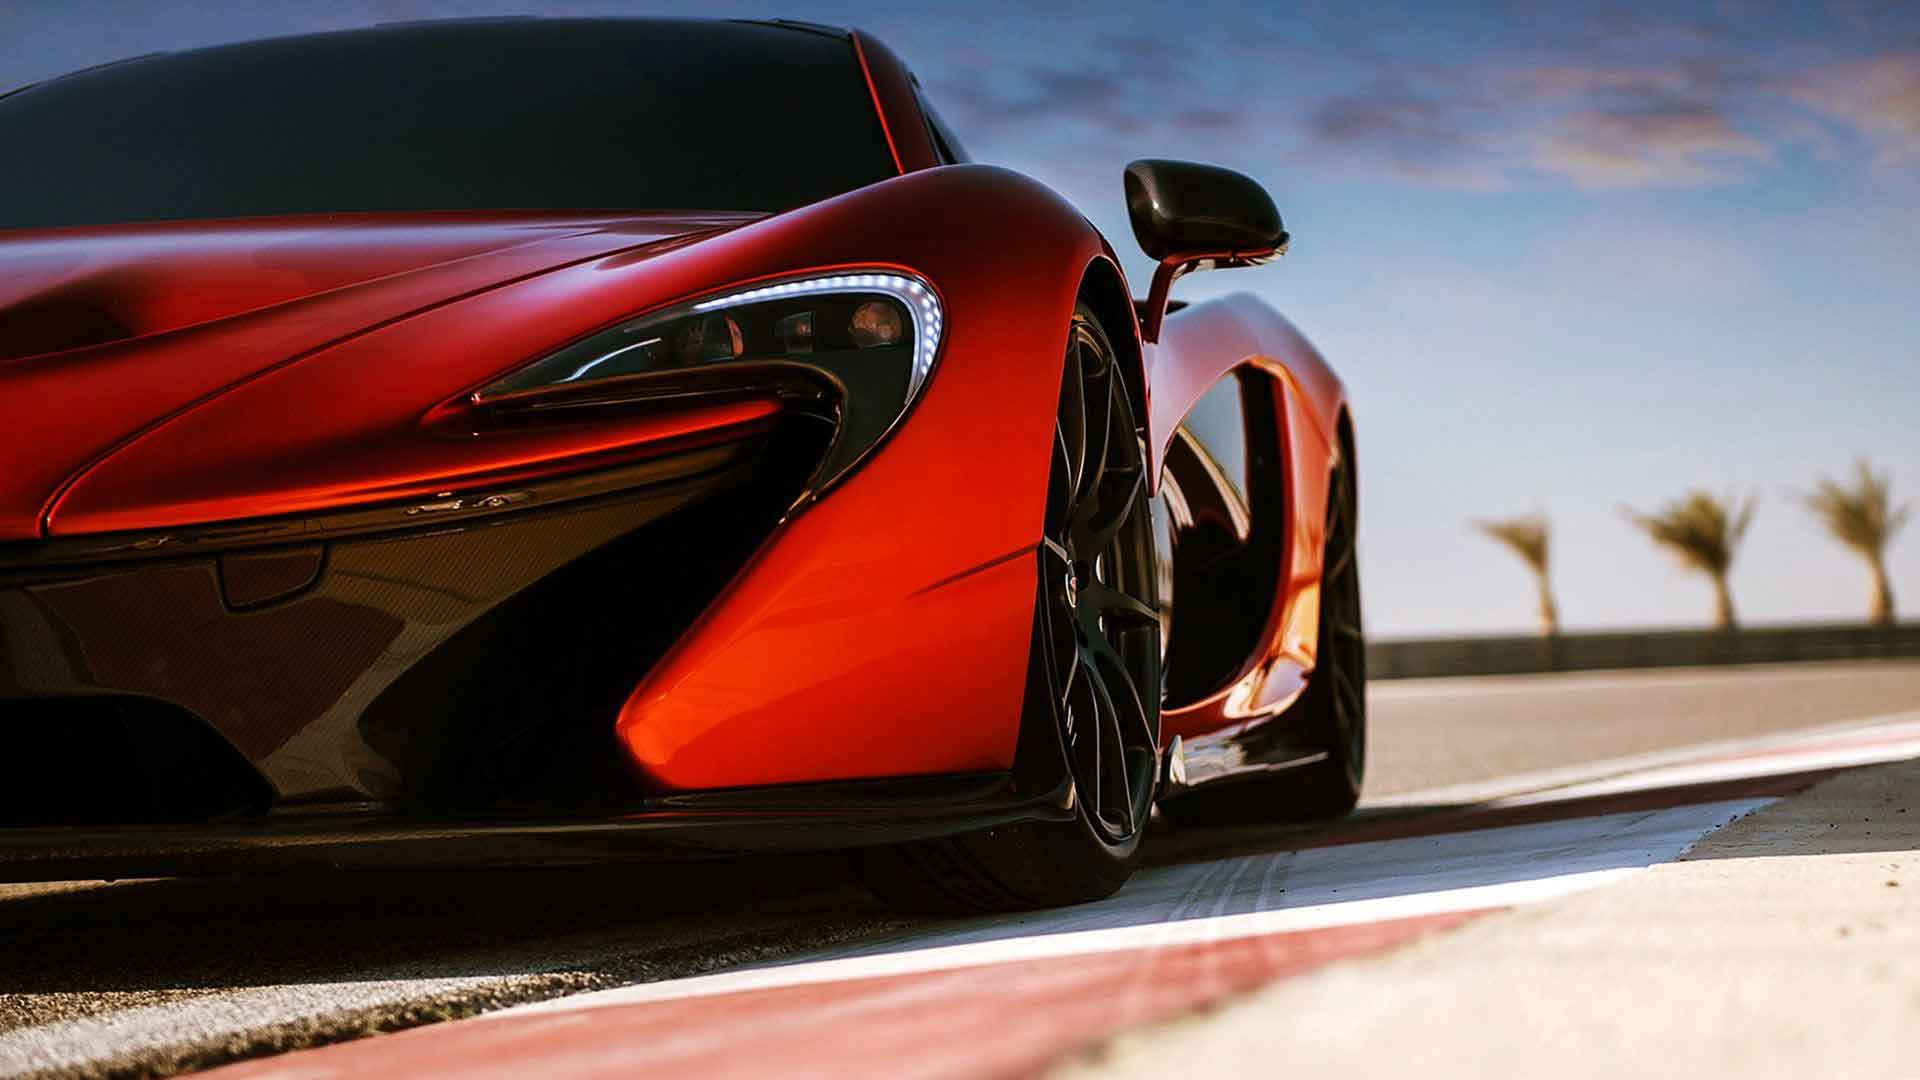 McLaren P1 – HD Wallpapers